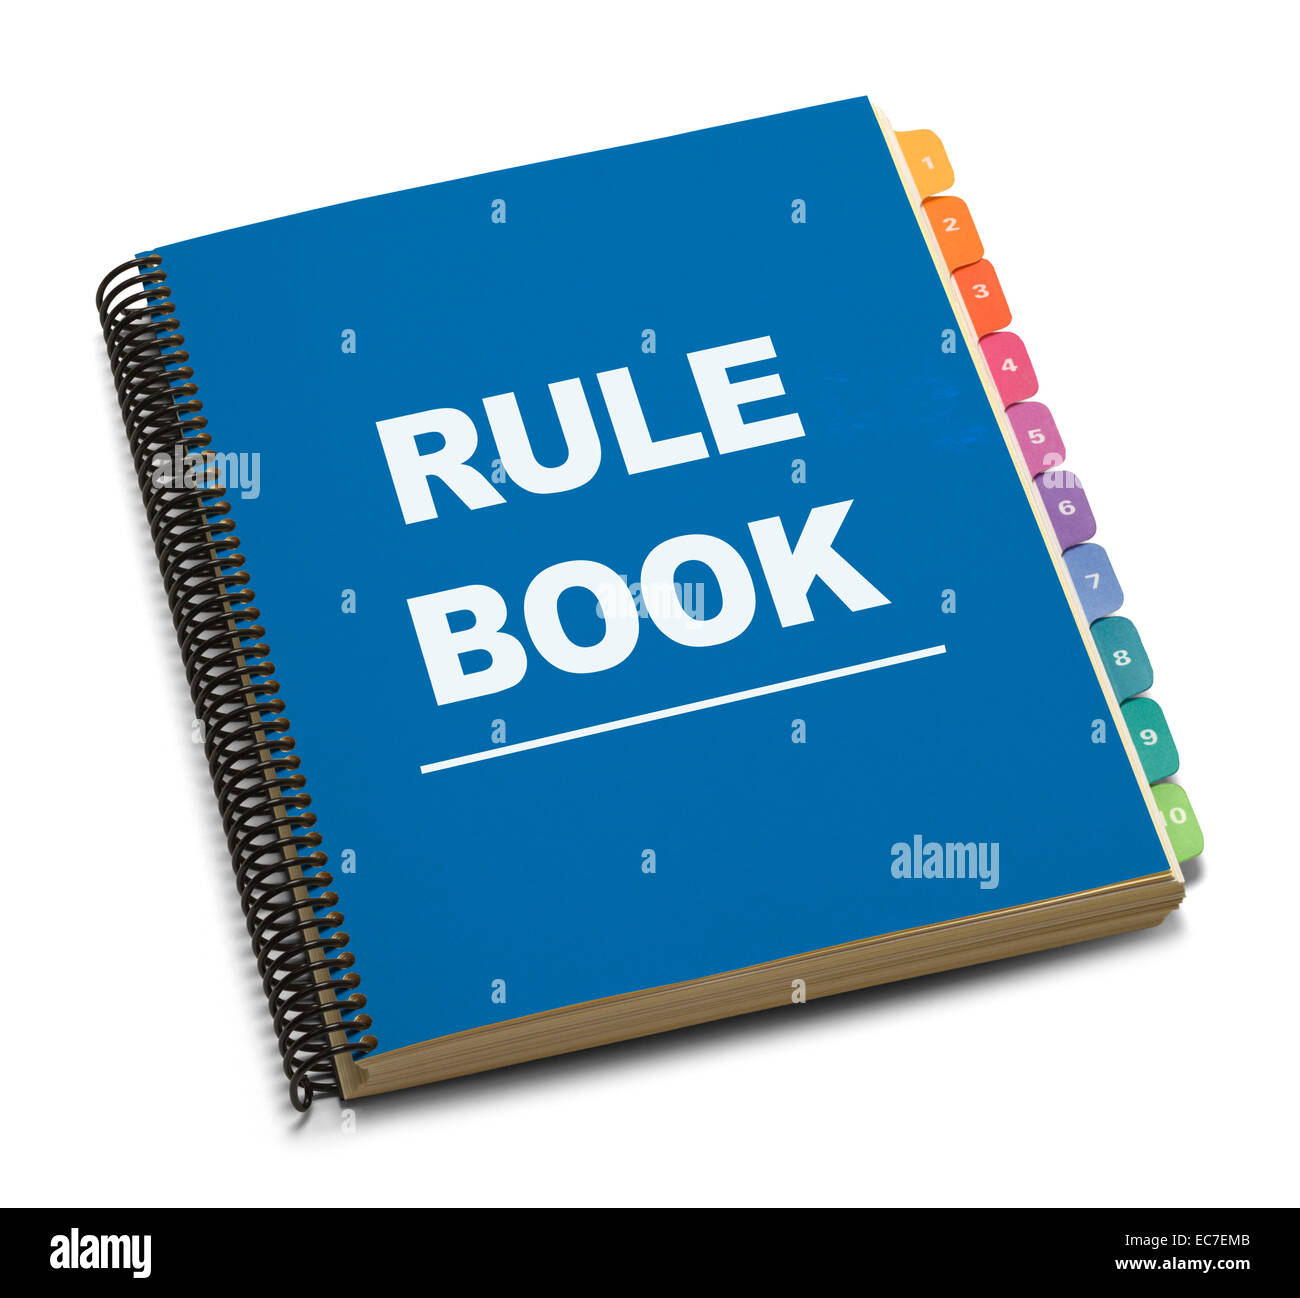 Large Spiral Bound Blue Rule Book with Tabs Isolated on White Background. - Stock Image